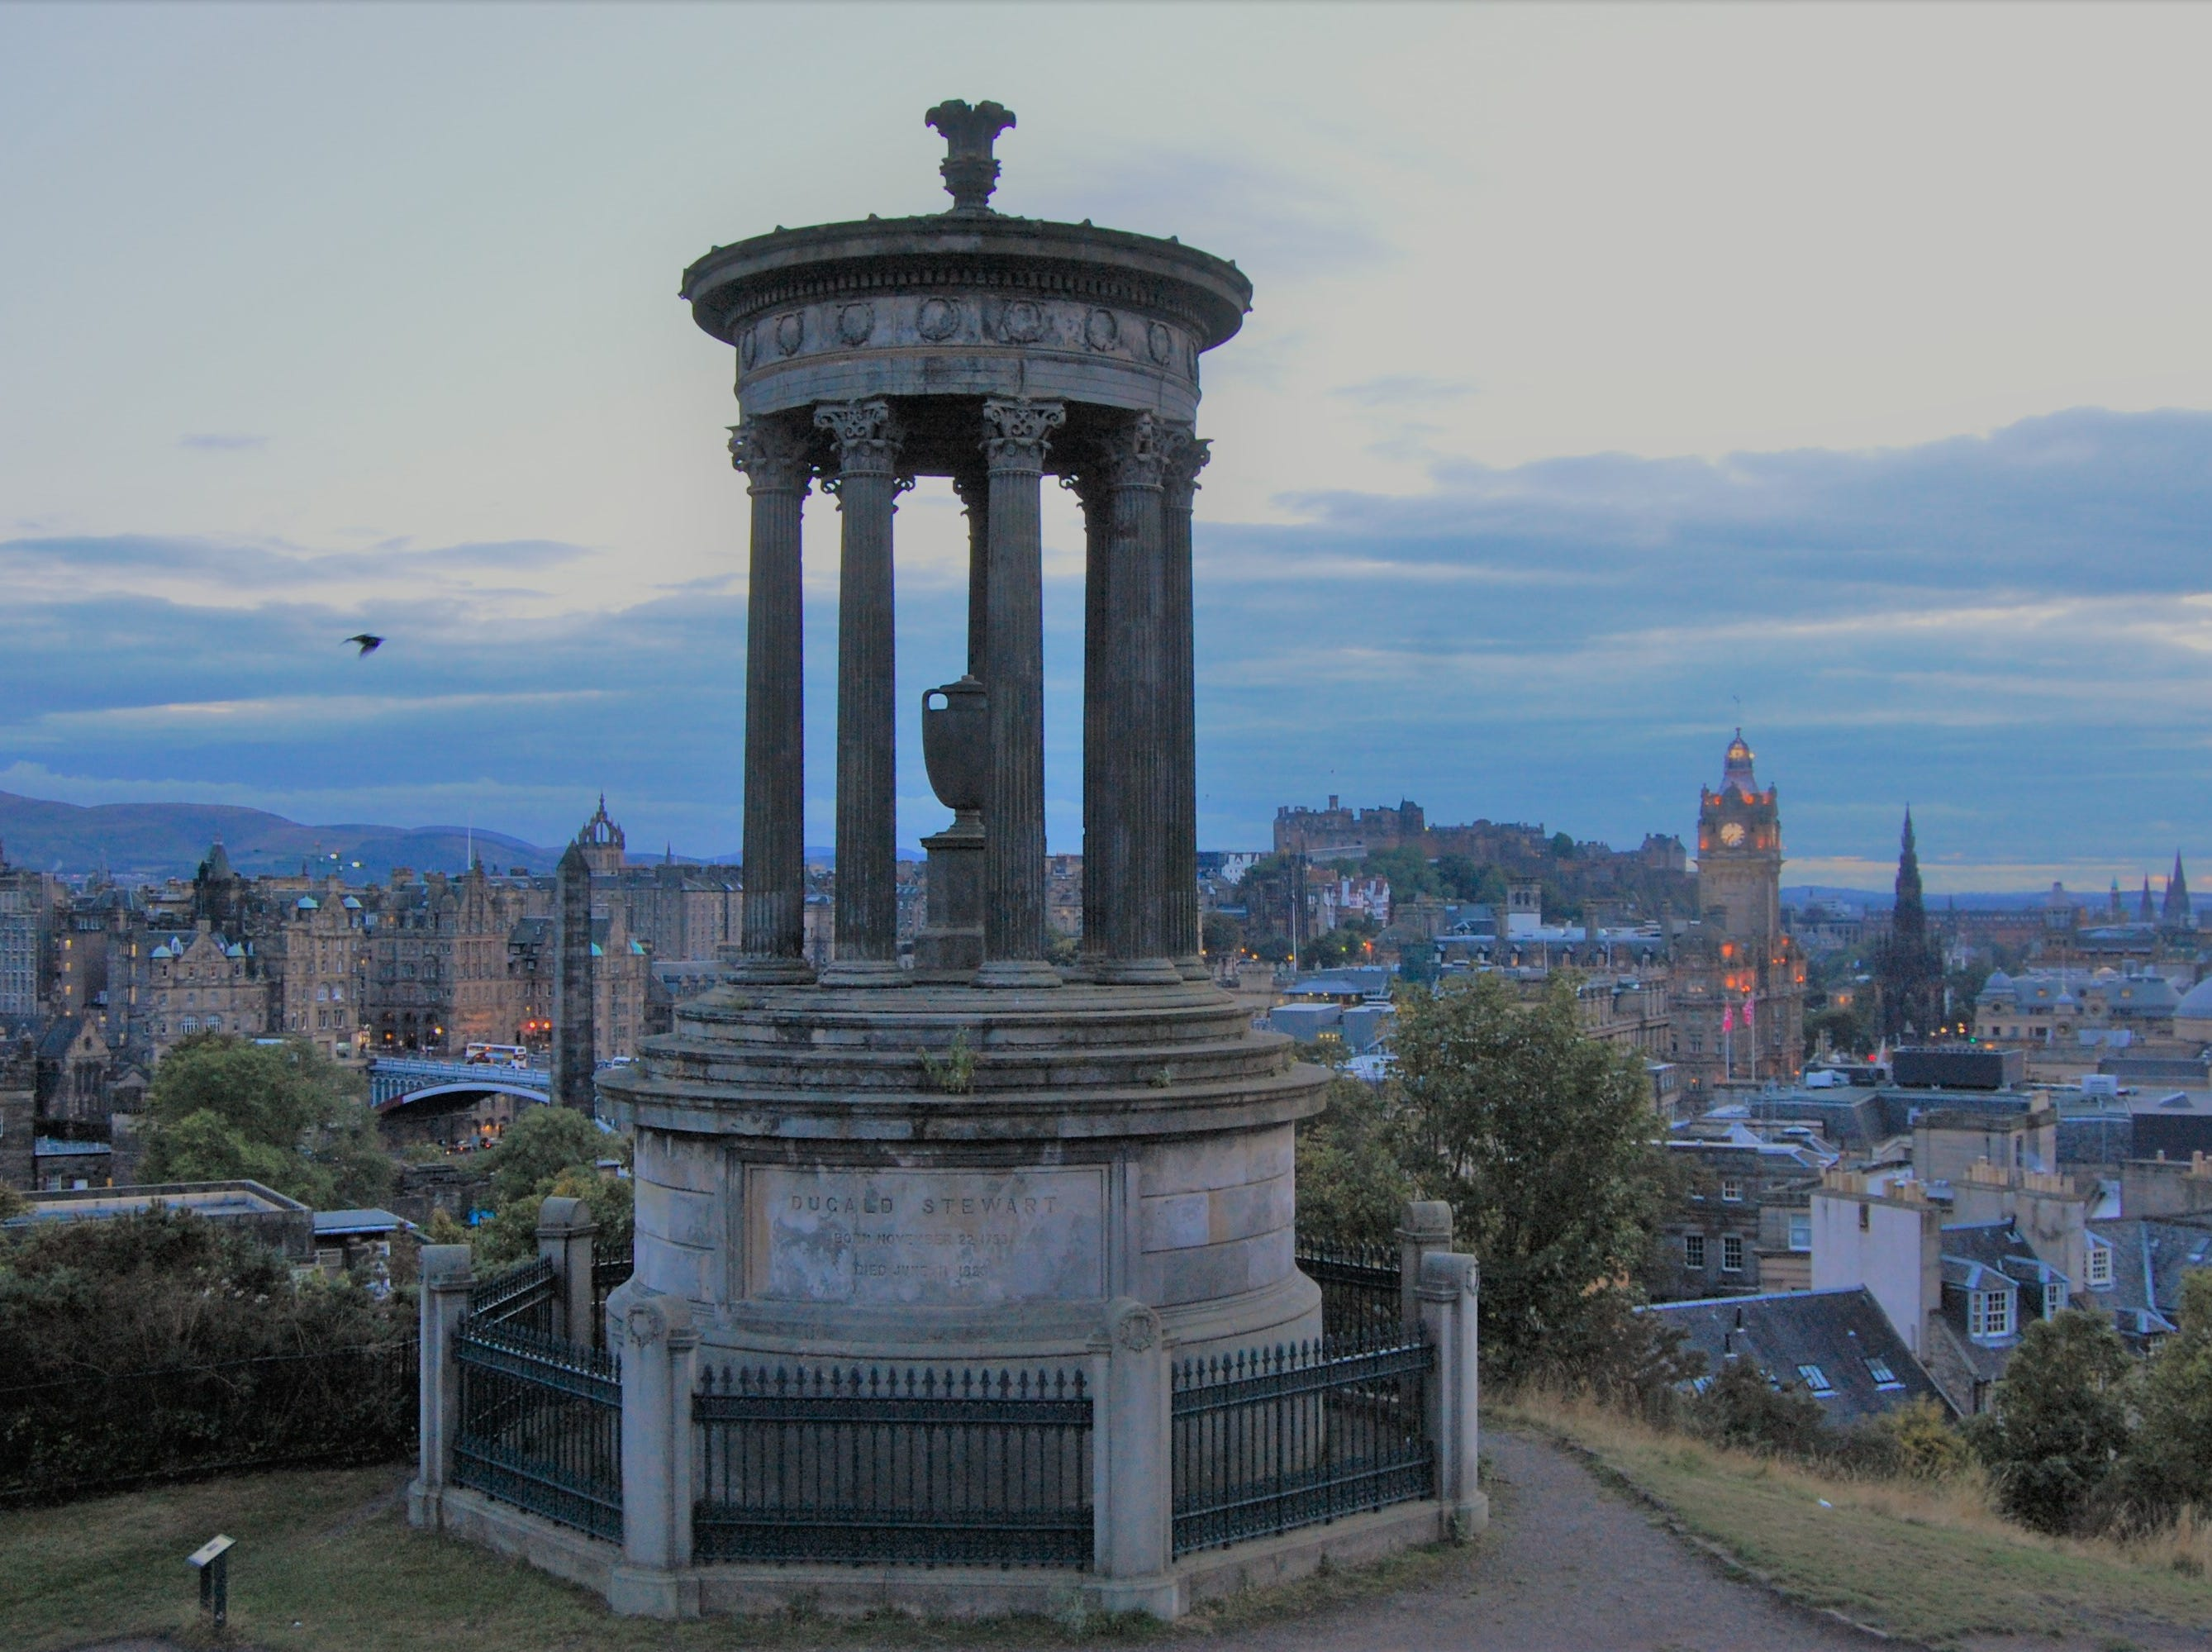 Calton Hill provides sweeping views of Edinburgh.